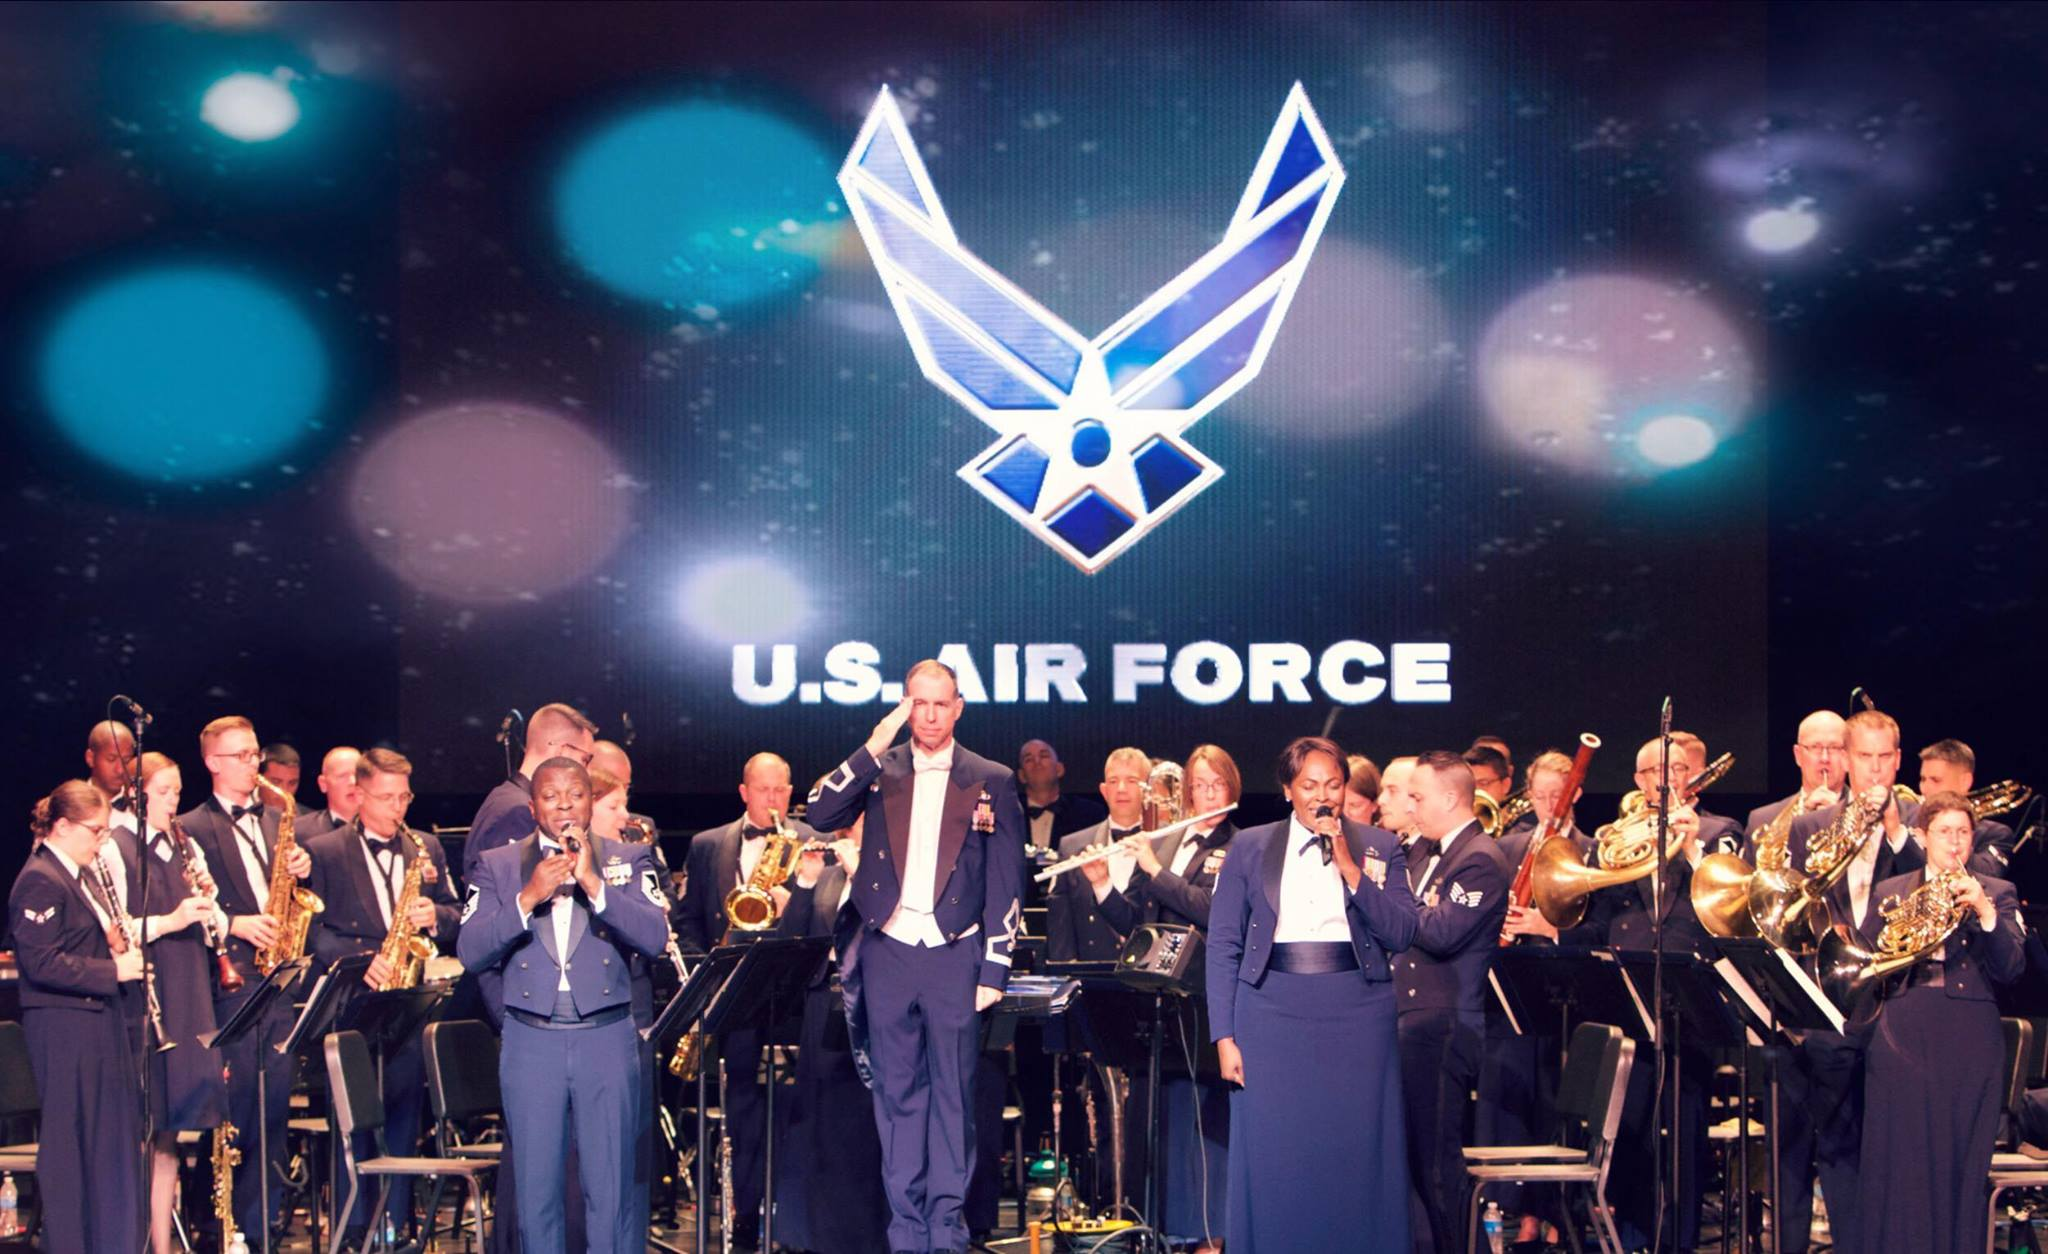 TALENT NEEDED: United States Air Force Bands are Looking for Clarinet Players! // Imagine 2020: Small Grants With Huge Potential